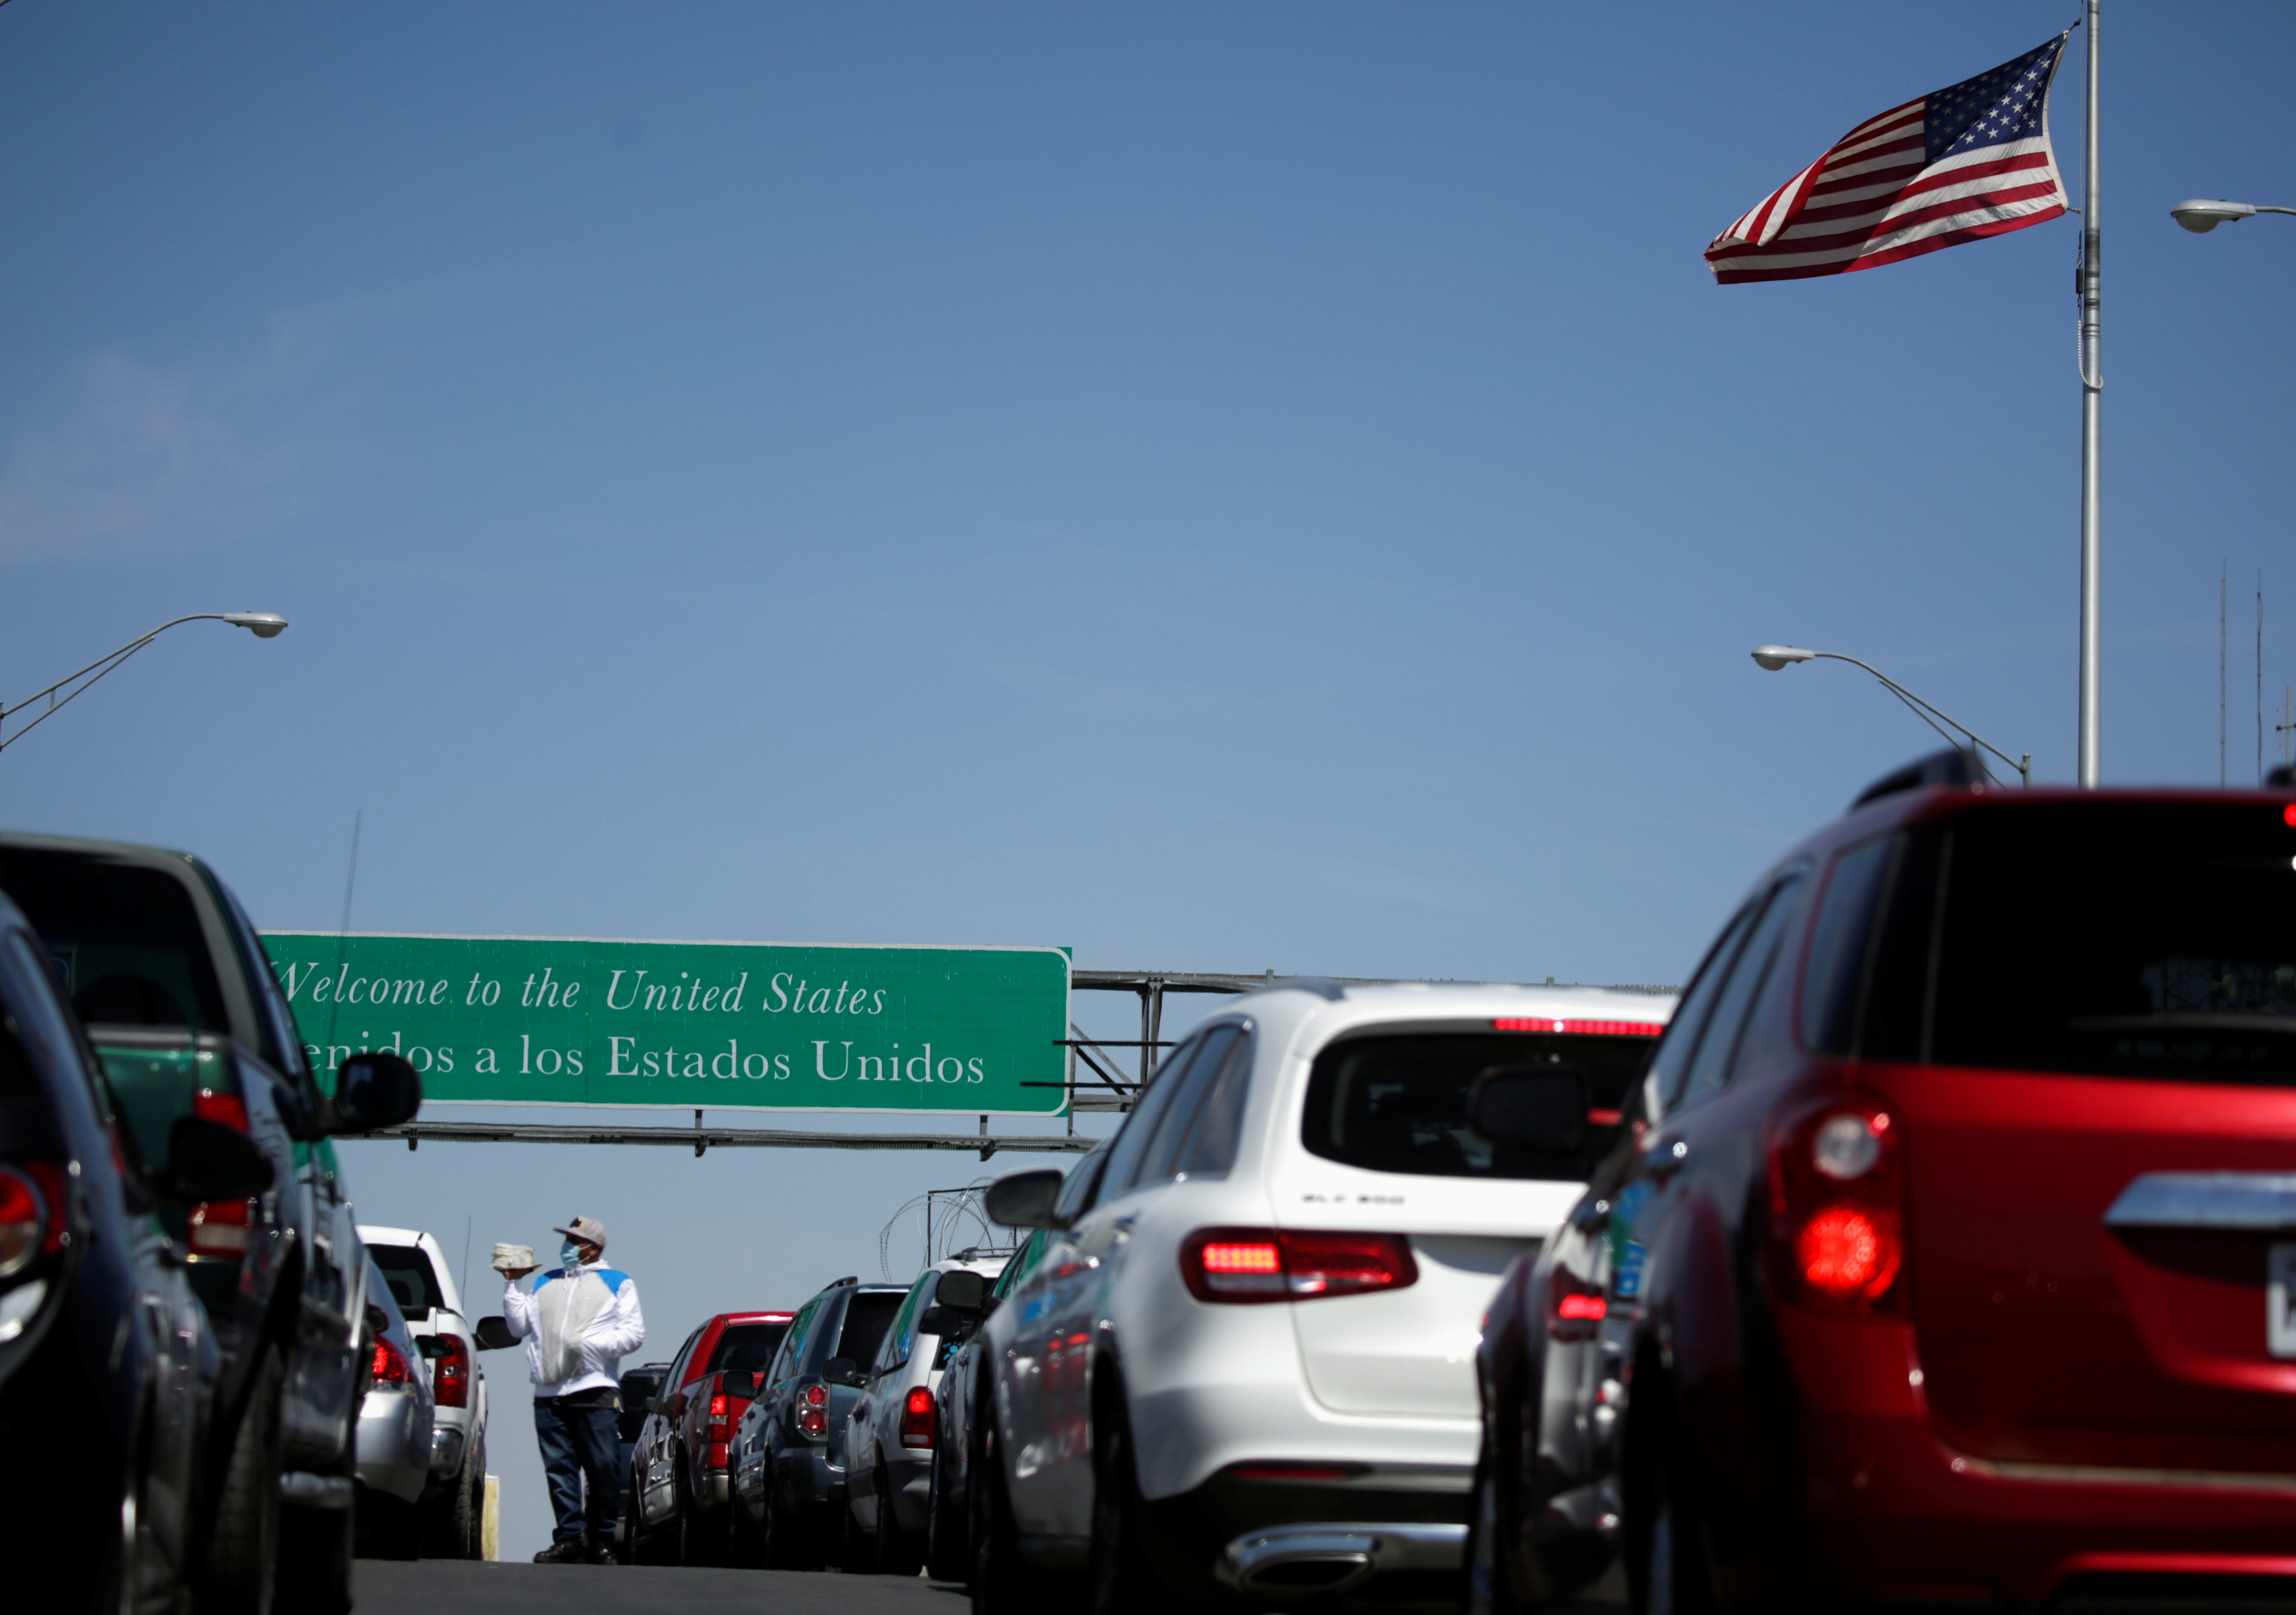 Vehicles wait in line to cross the Cordova Bridge of the Americas (El Paso CBOA) towards El Paso, Texas, U.S., as Mexico's Department of Foreign Relations requested another month-long extension on land-crossing restrictions at the U.S.-Mexico border due to the coronavirus disease (COVID-19) outbreak, in Ciudad Juarez, Mexico March 18, 2021. REUTERS/Jose Luis Gonzalez